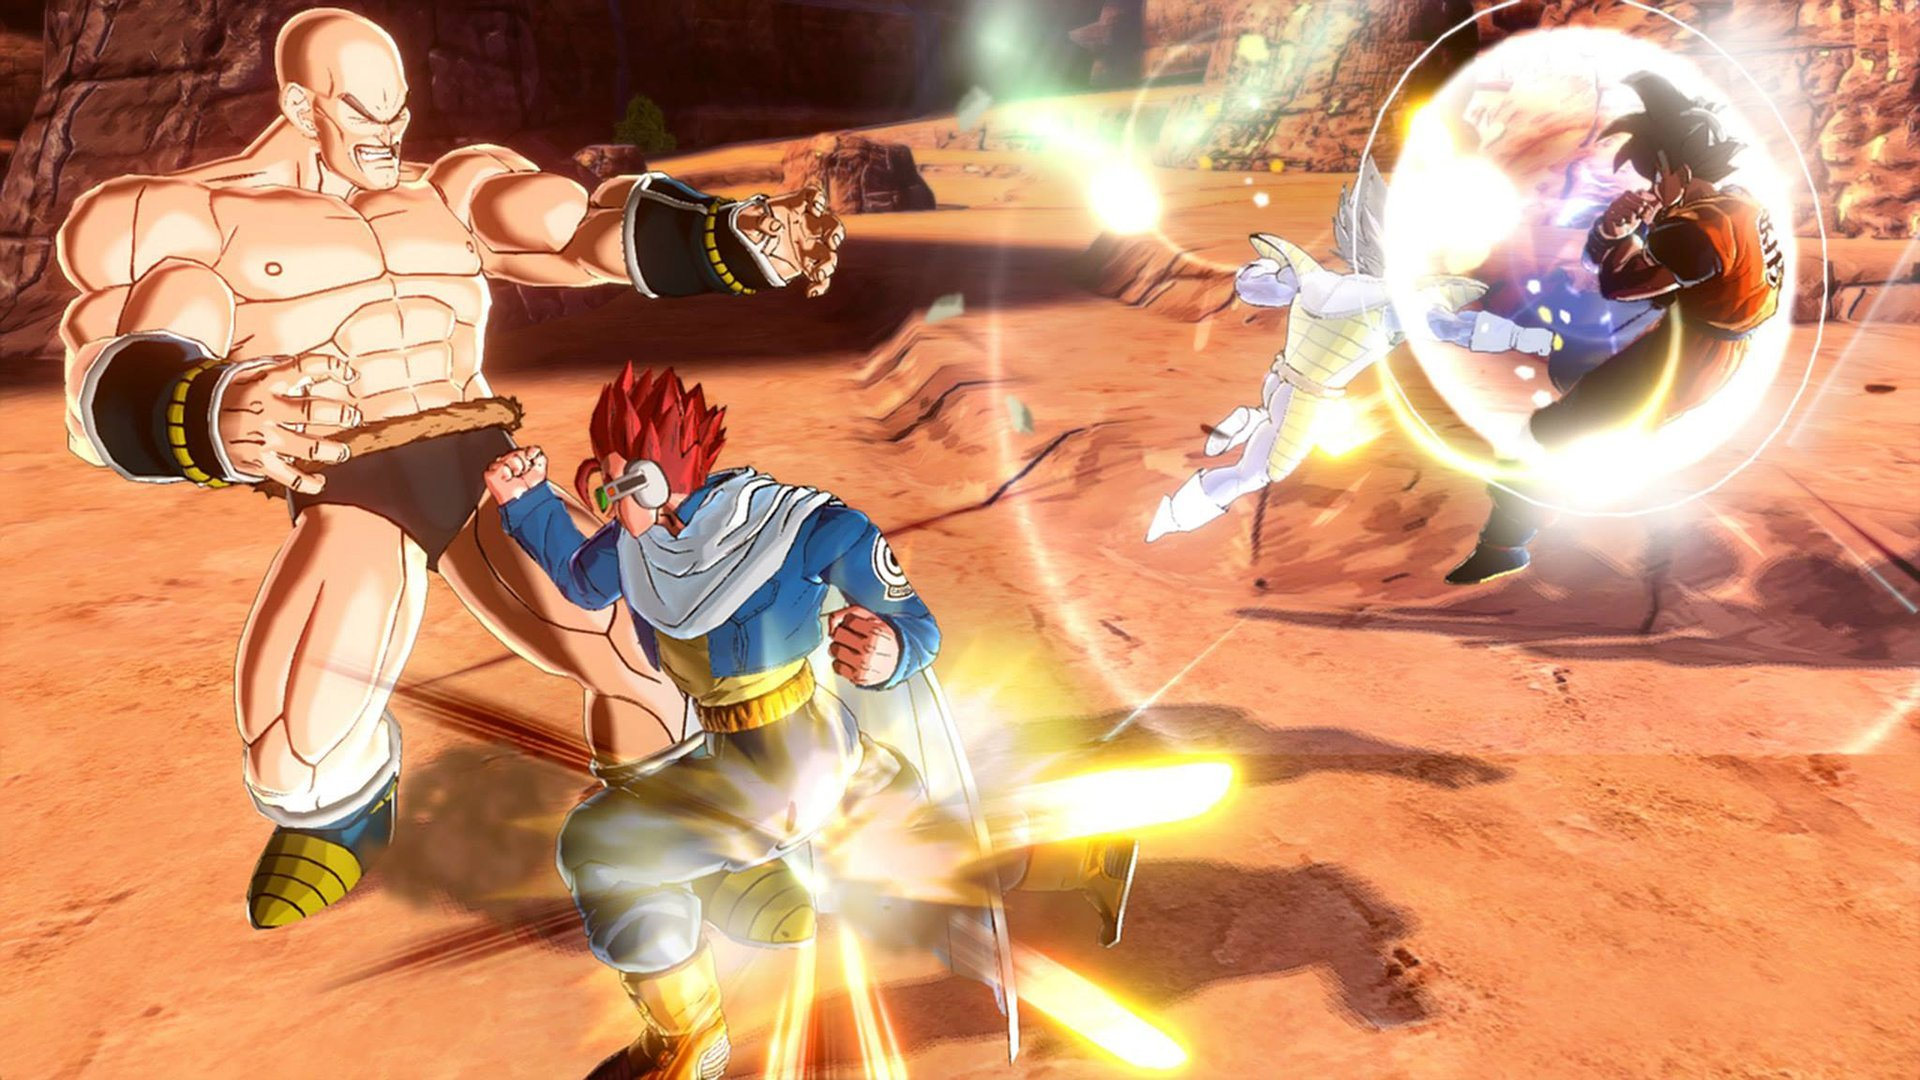 1403541730-dragon-ball-xenoverse-7-dragon-ball-xenoverse-have-japan-s-reviews-confirmed-z-s-hype